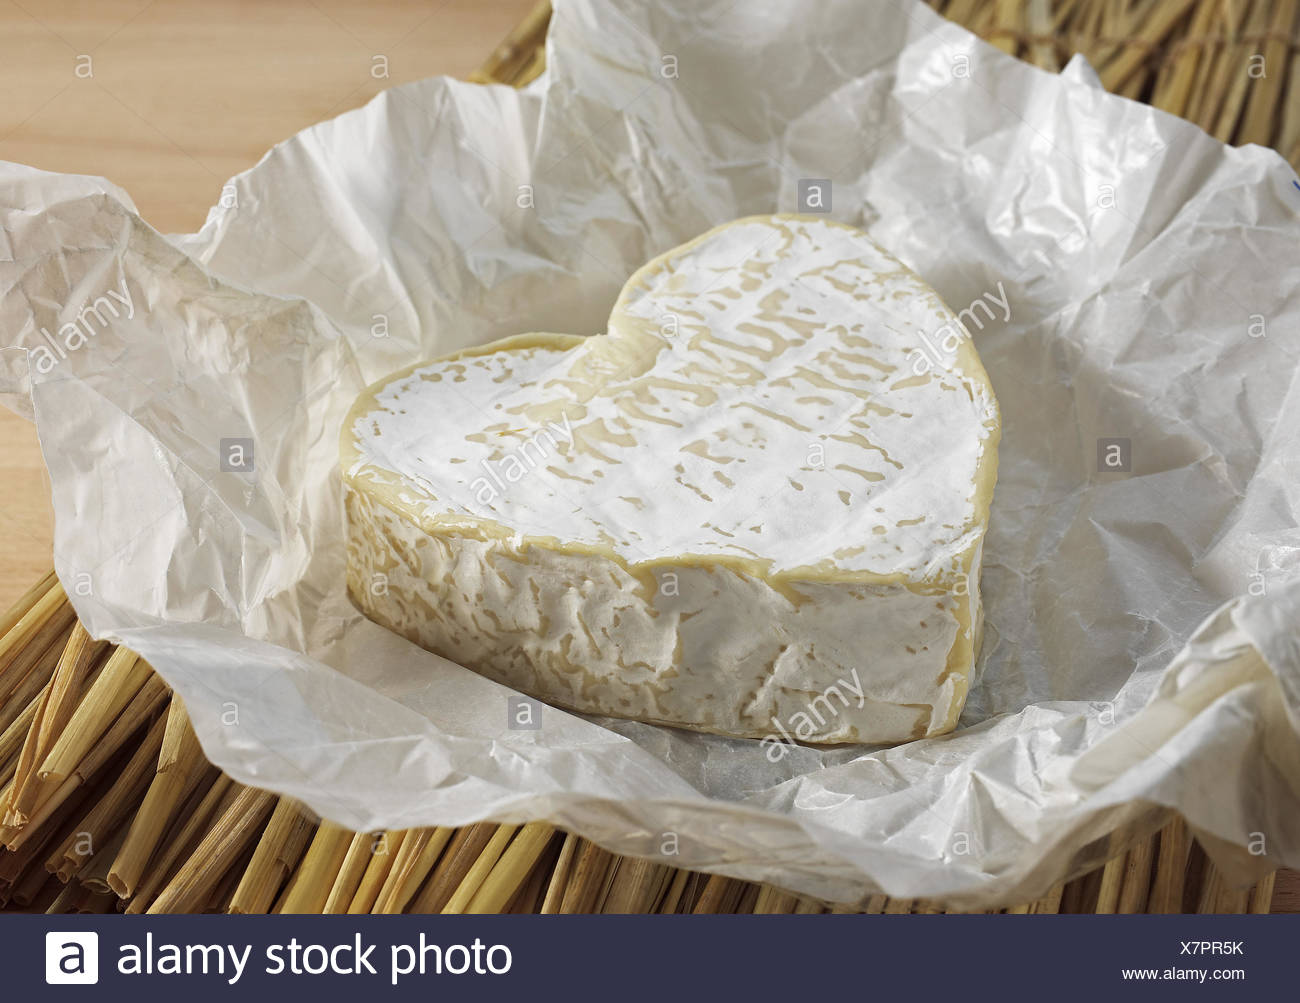 Neufchatel, French Cheese made in Normandy from Cow's Milk - Stock Image